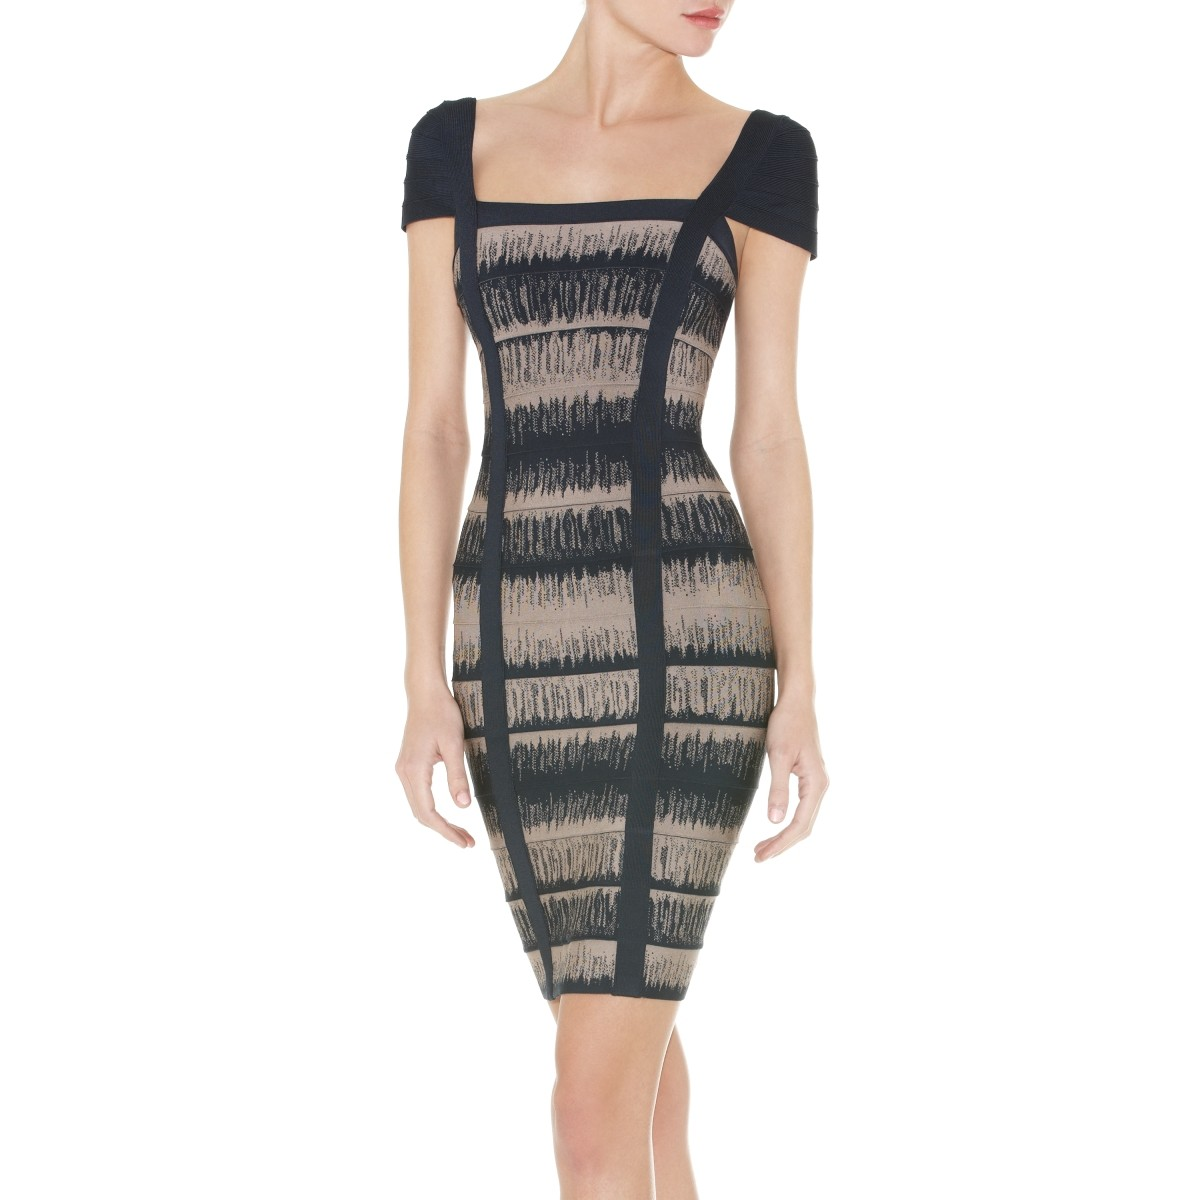 Herve Leger Gemma Bandage Dress